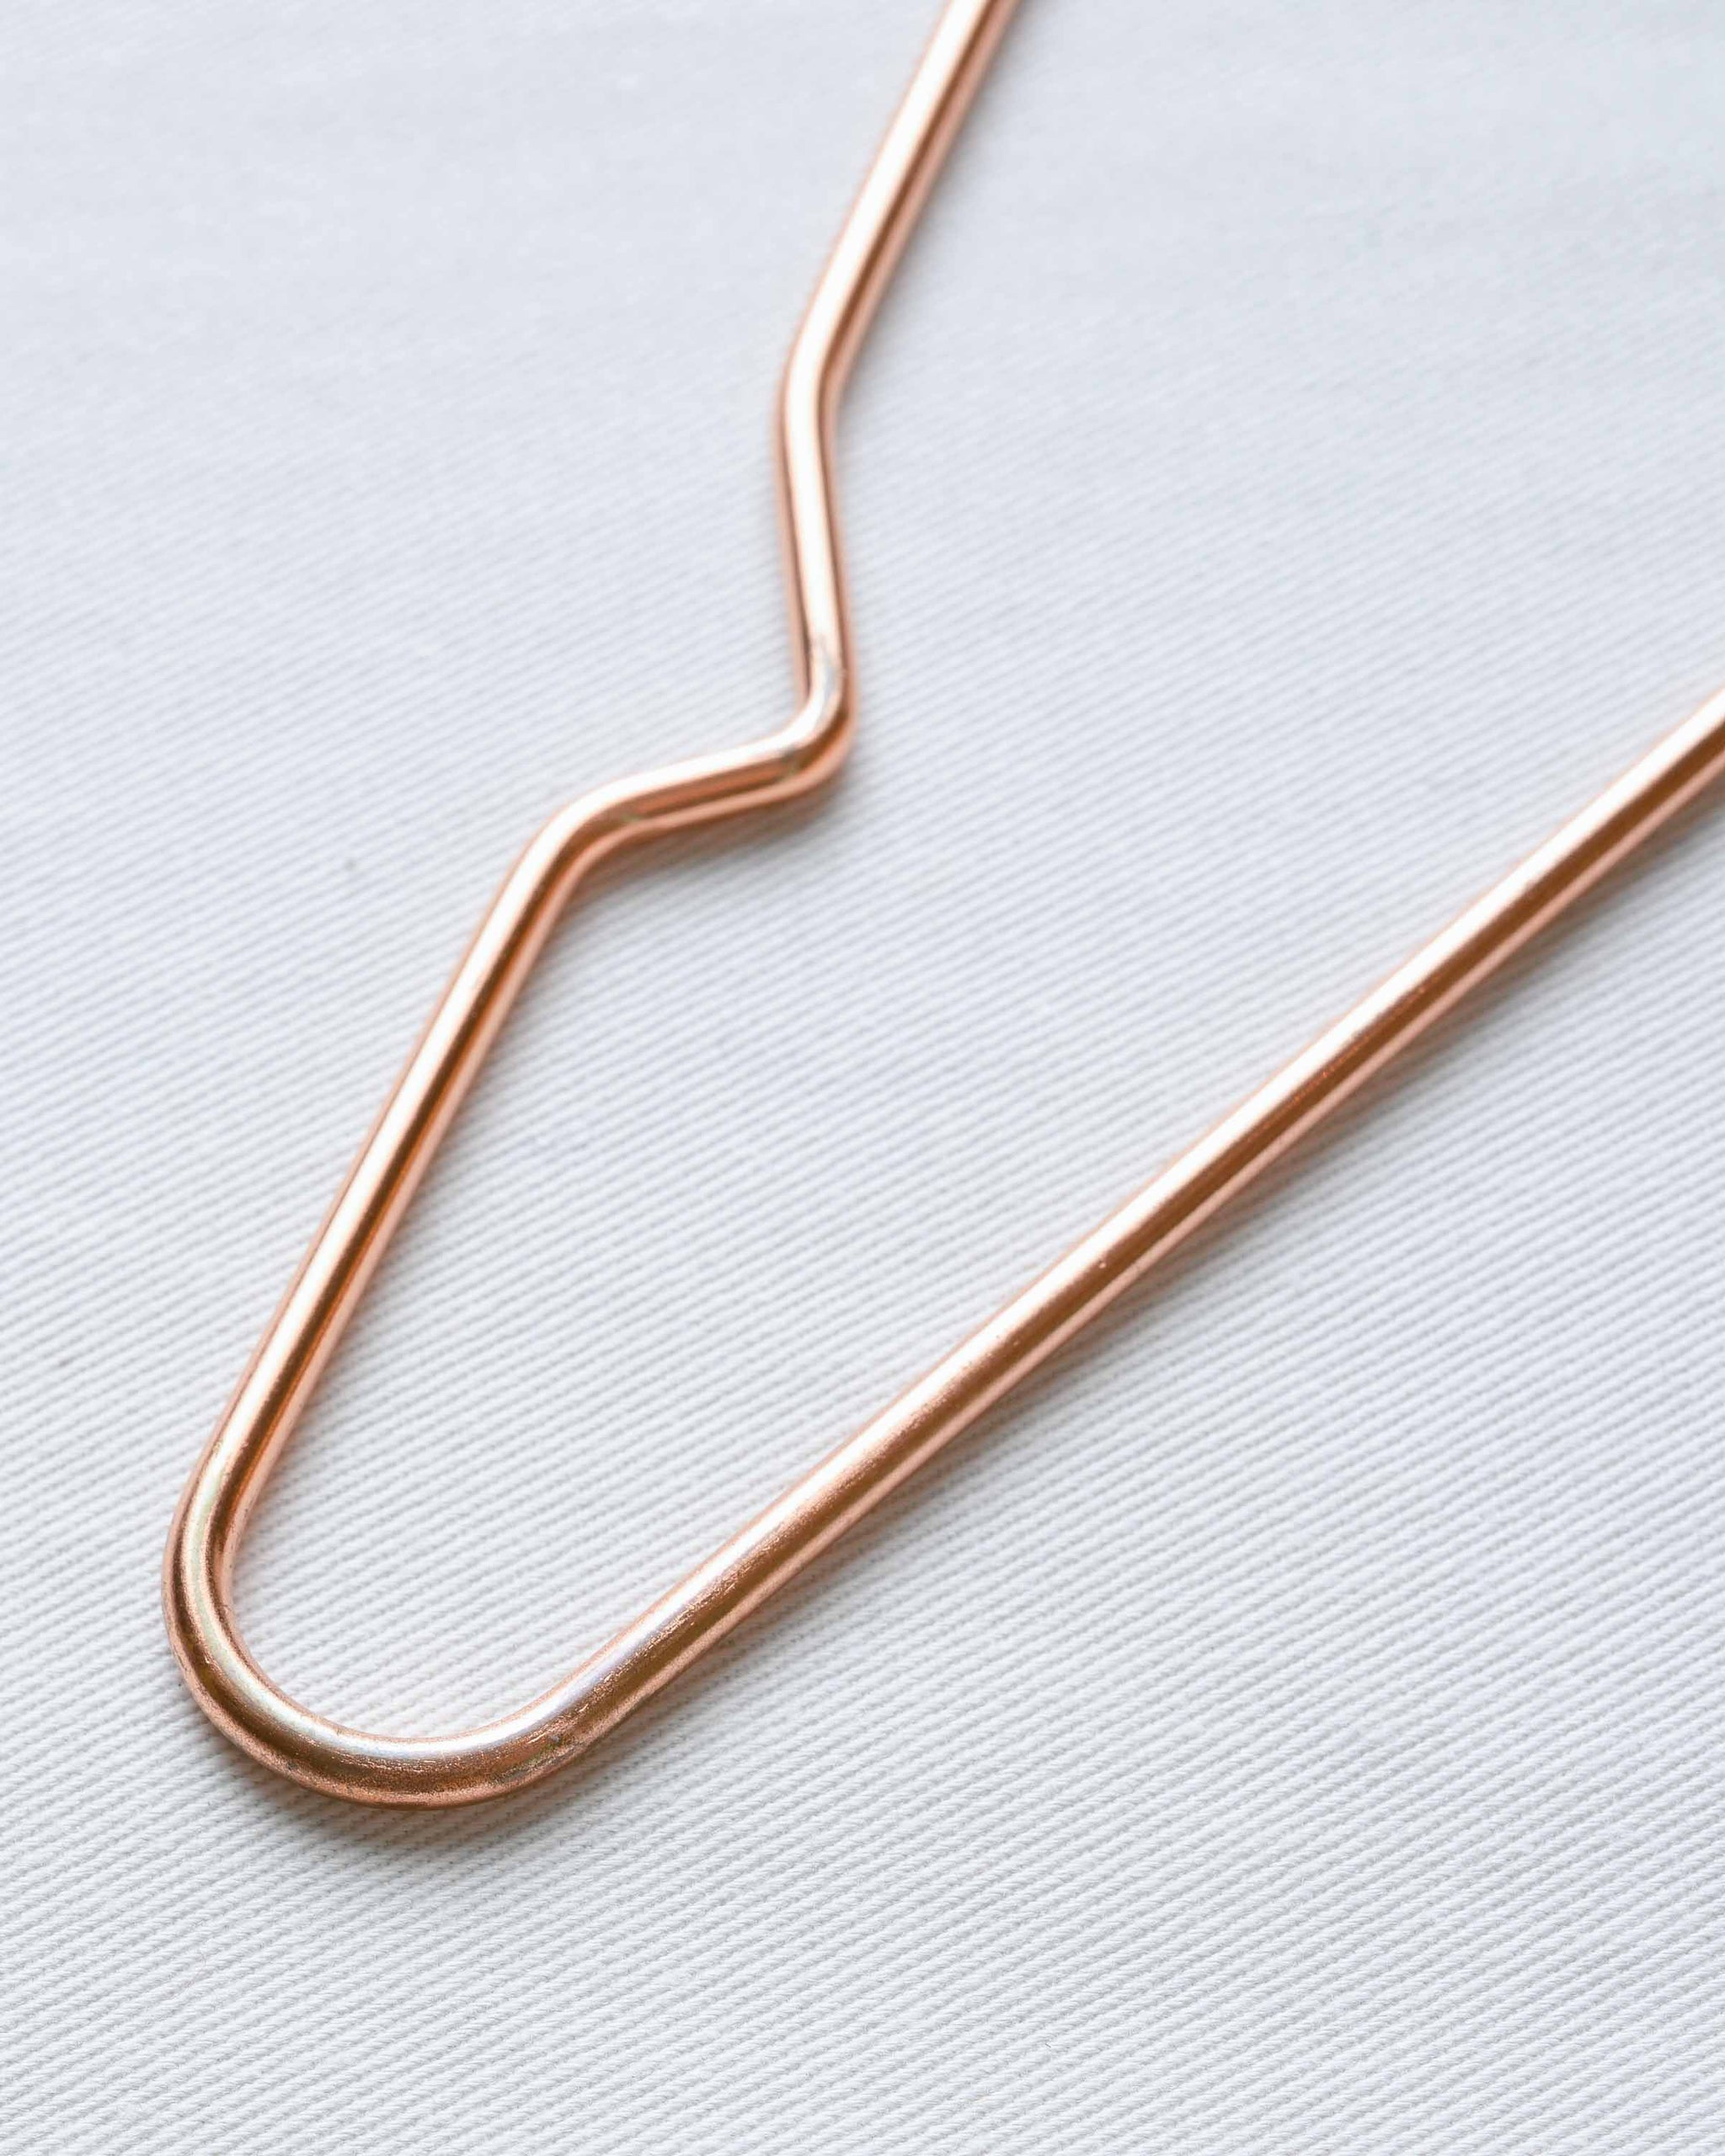 Copper Finish Metal Wire Hanger